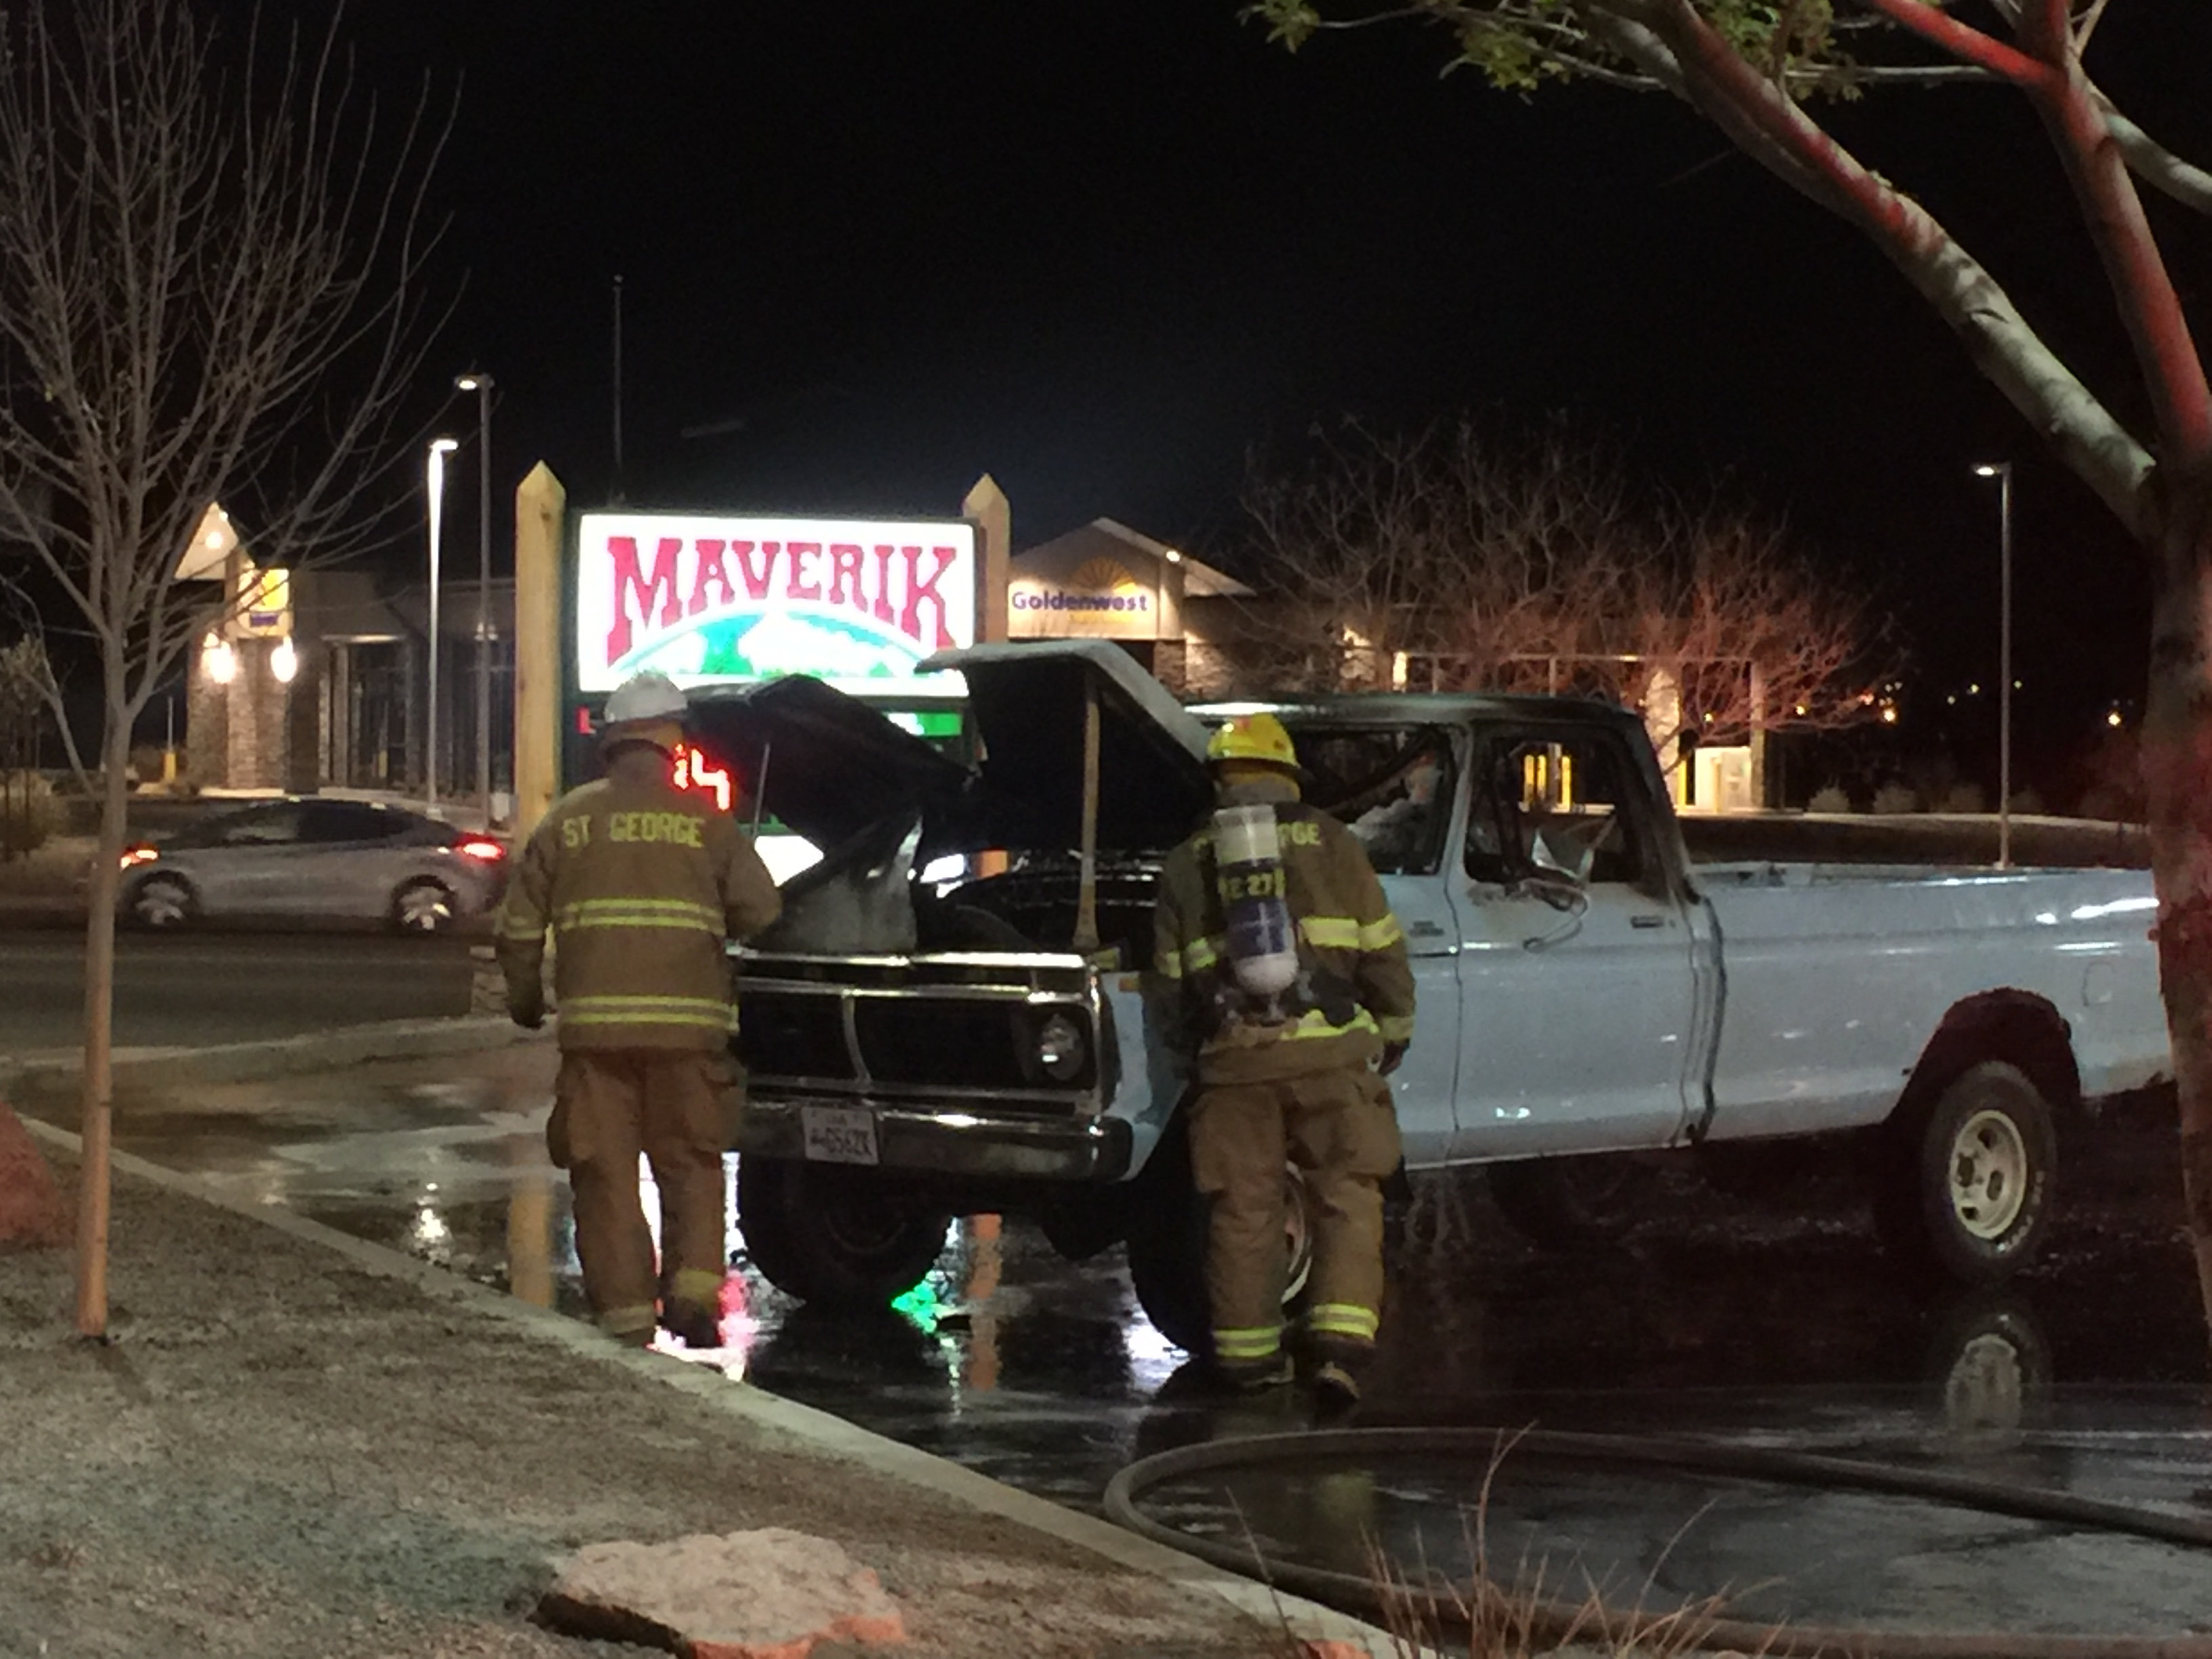 Firefighters extinguishing blaze at Maverik – Adventure's First Stop - convenience store at 2078 E. Riverside Drive, St. George, Utah, March 10 2016 | Photo courtesy of Kinnon Peck, St. George News